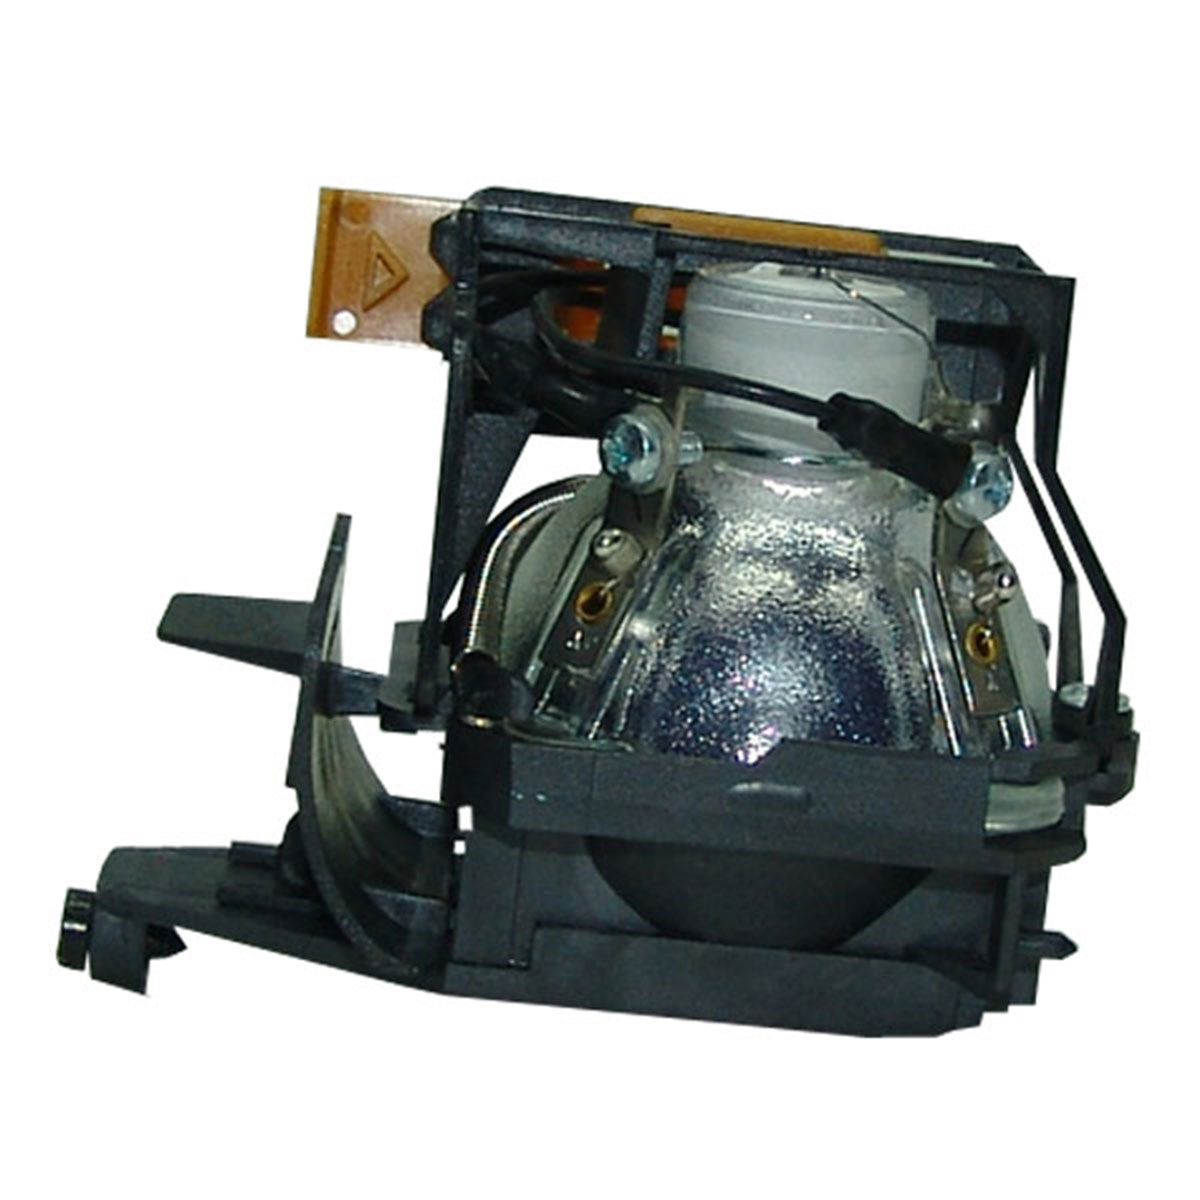 Original Philips Projector Lamp Replacement with Housing for IBM 33L3456 - image 1 of 5